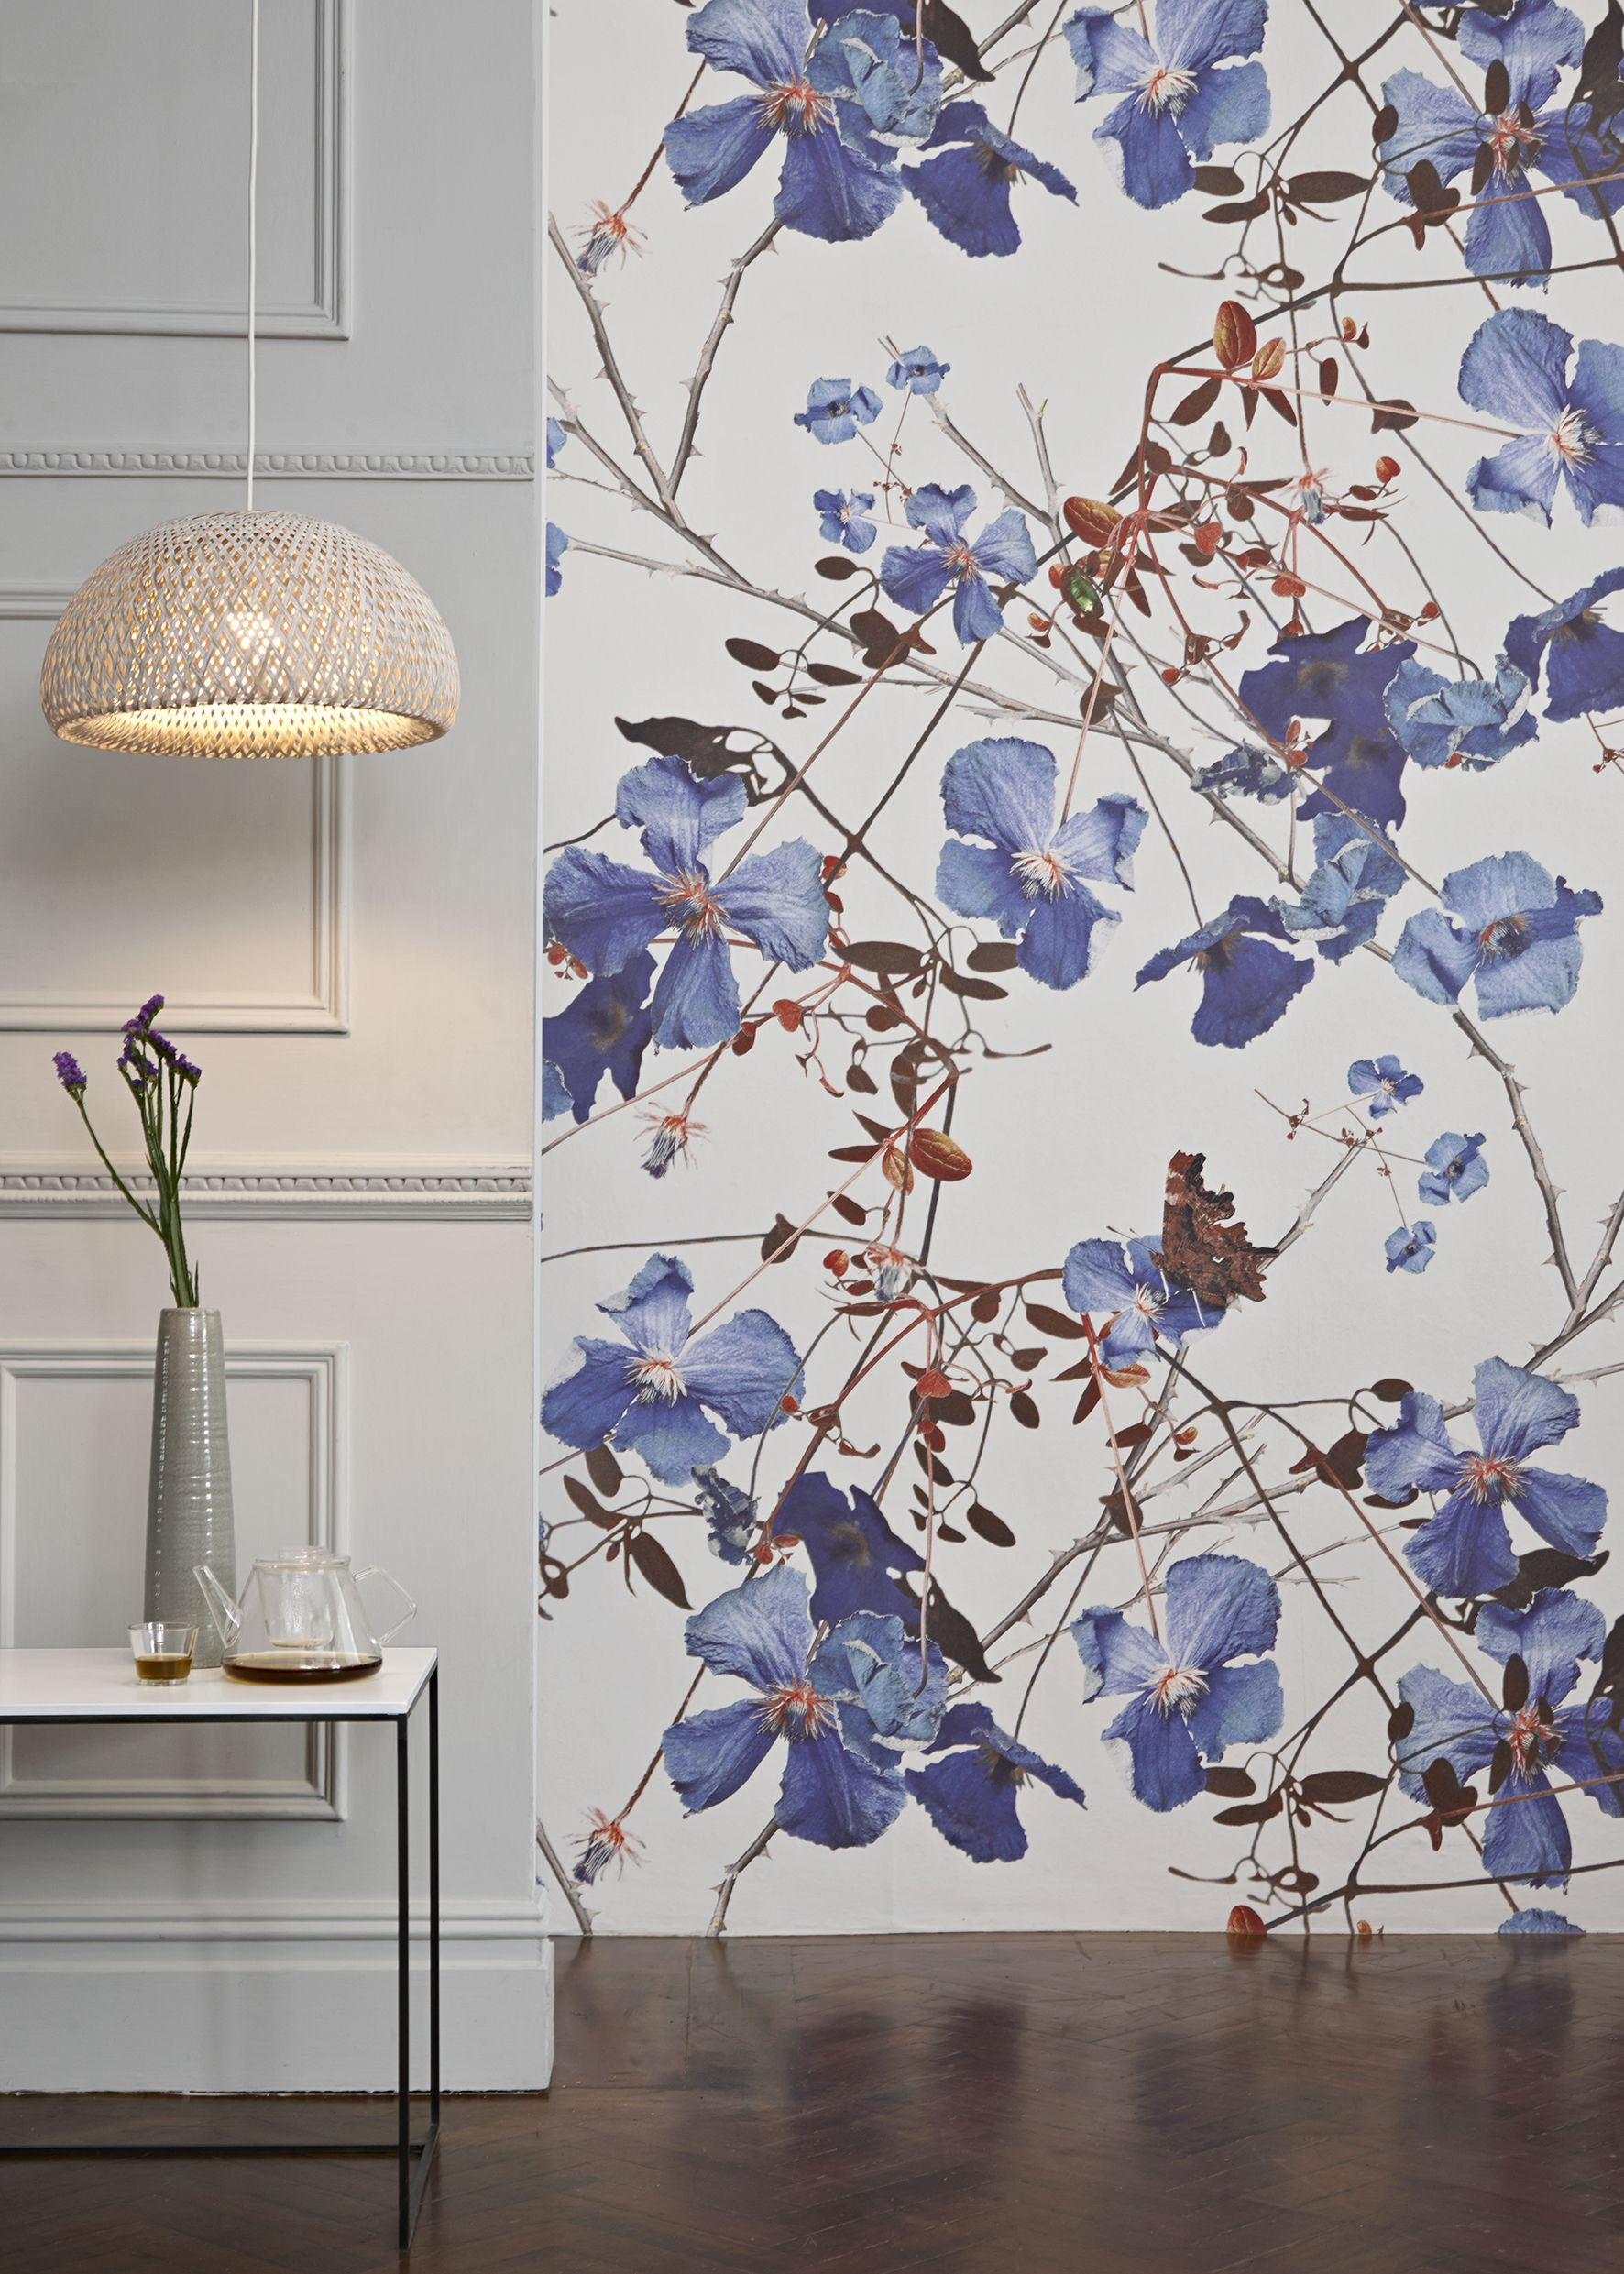 Clematis Powder Blue Mural Michael Angove Collection From 65 Per Sq M Shop Canvases Wall Murals At Surfaceview Co Uk